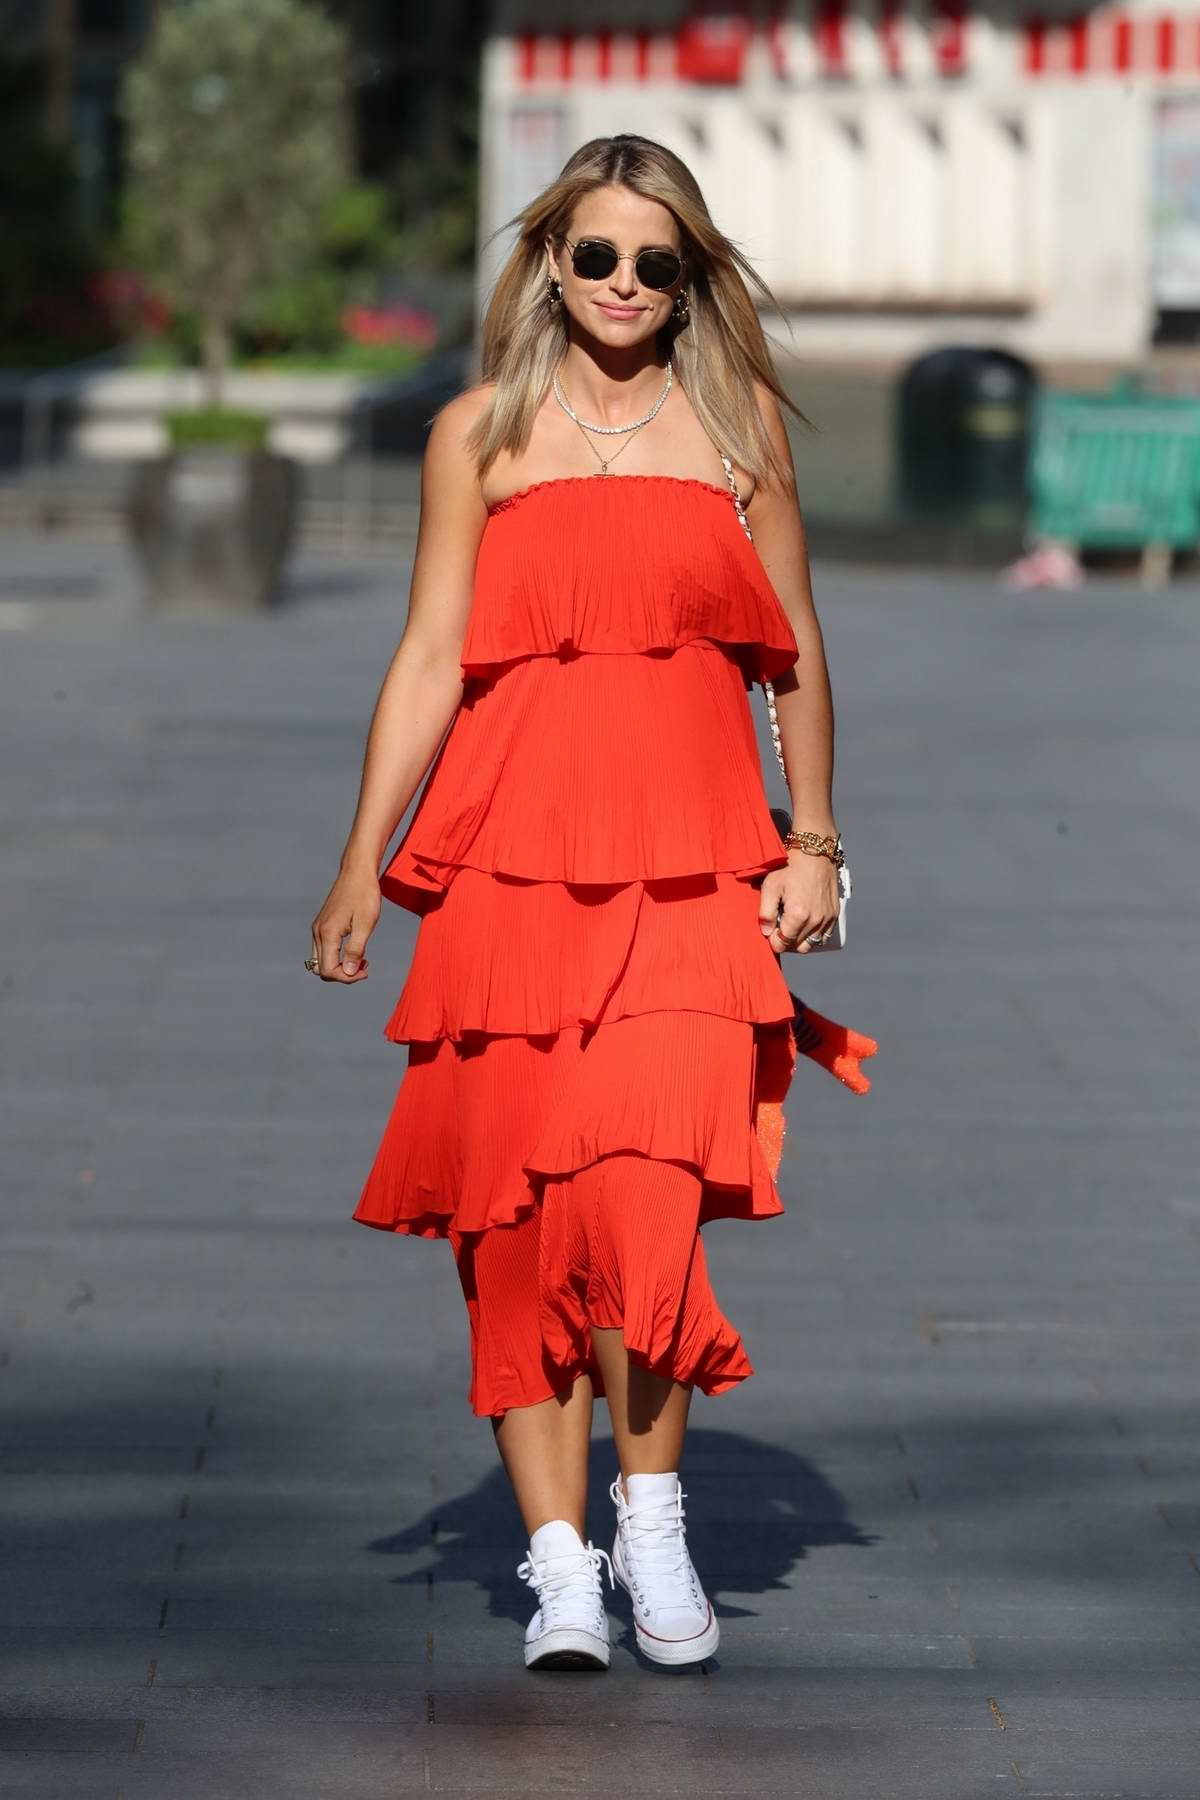 Vogue Williams looks striking in a red dress as she leaves the Heart Radio Studios in London, UK